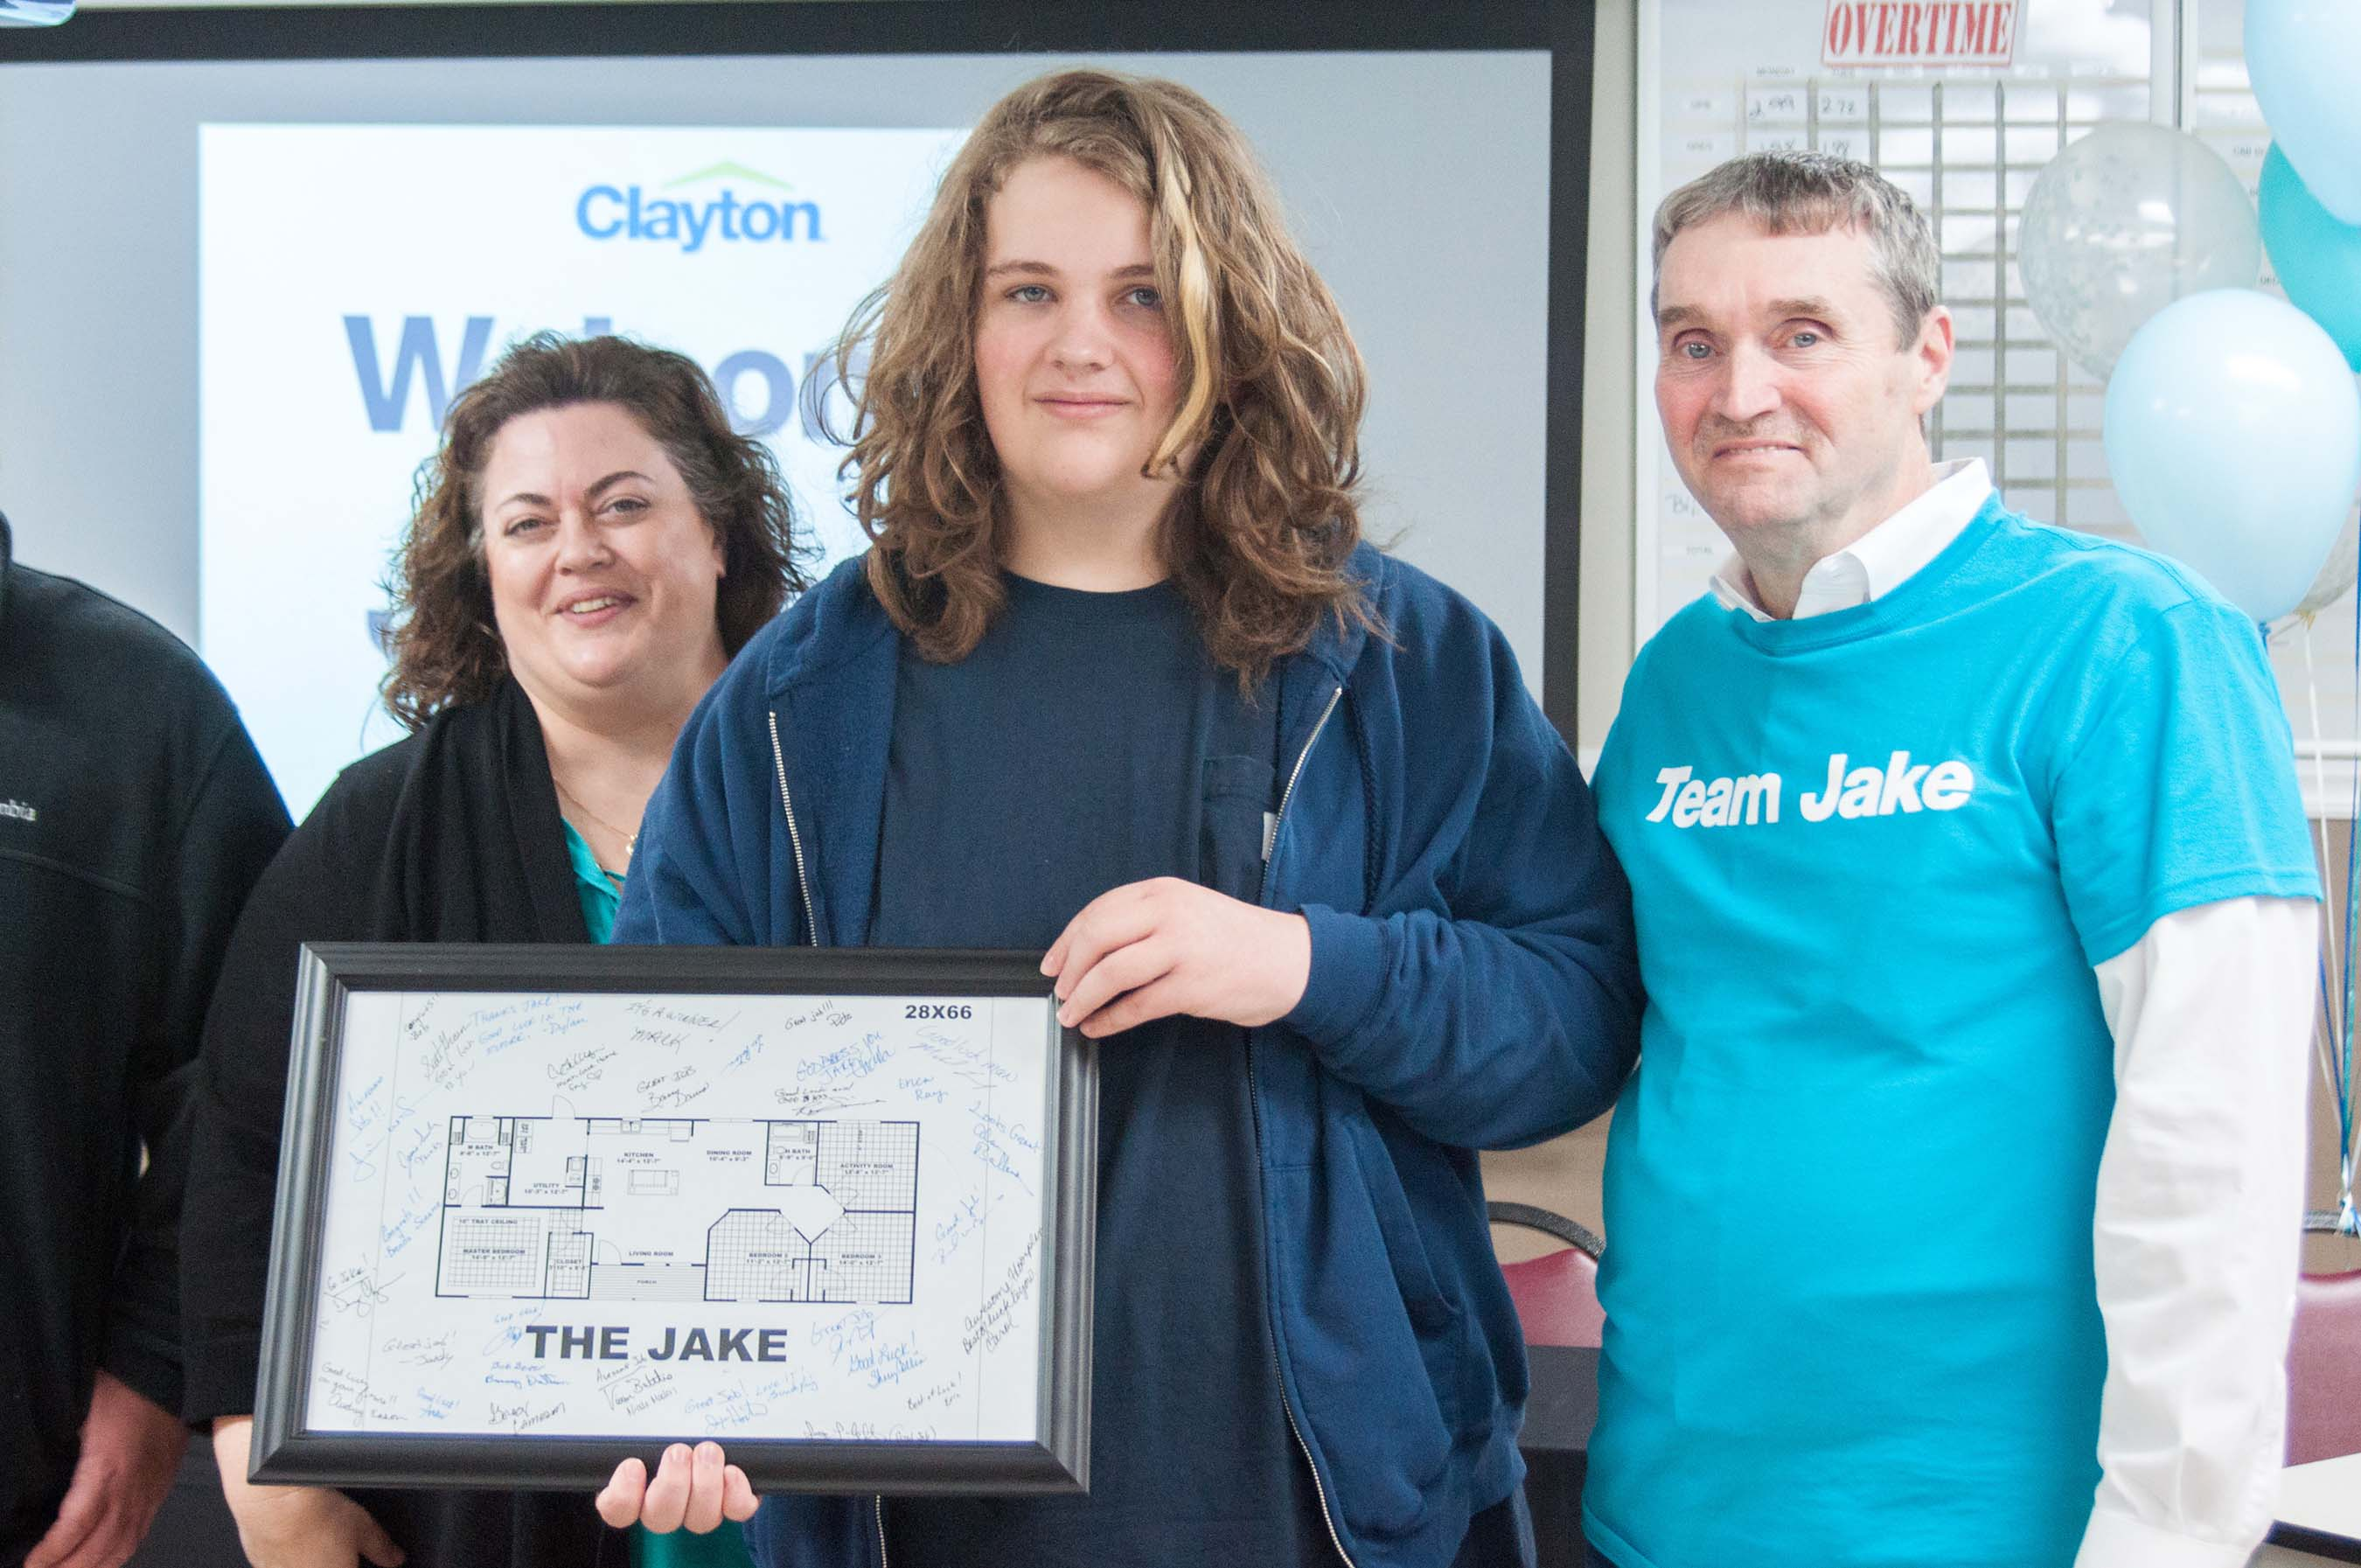 """The Jake"" home blueprint was printed and signed by the Clayton team for Jake to remember his visit to the Clayton building facility."